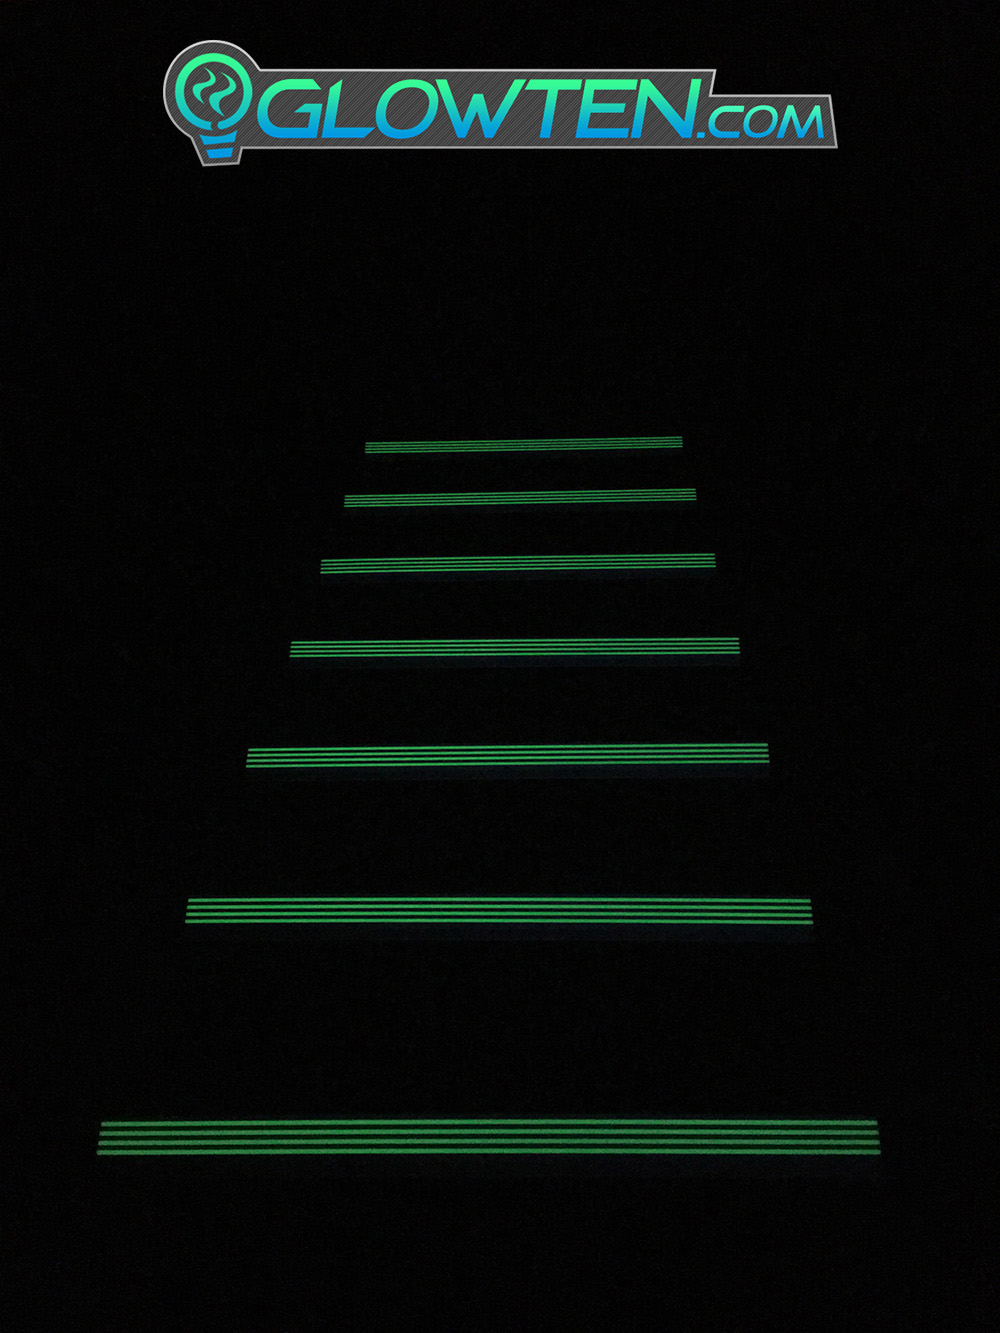 GLOWTEN.com - ANTI-SLIP STAIRS NOSING TREAD Traction Out Door All Weather GRIP STRENGTH 4-BANDS FOURBANDS GLOW IN THE DARK LUMINOUS SAFETY STRIP NON-SKID SEE BETTER AT NIGHT PREVENT FALLING FOR MINIMUM 31.5